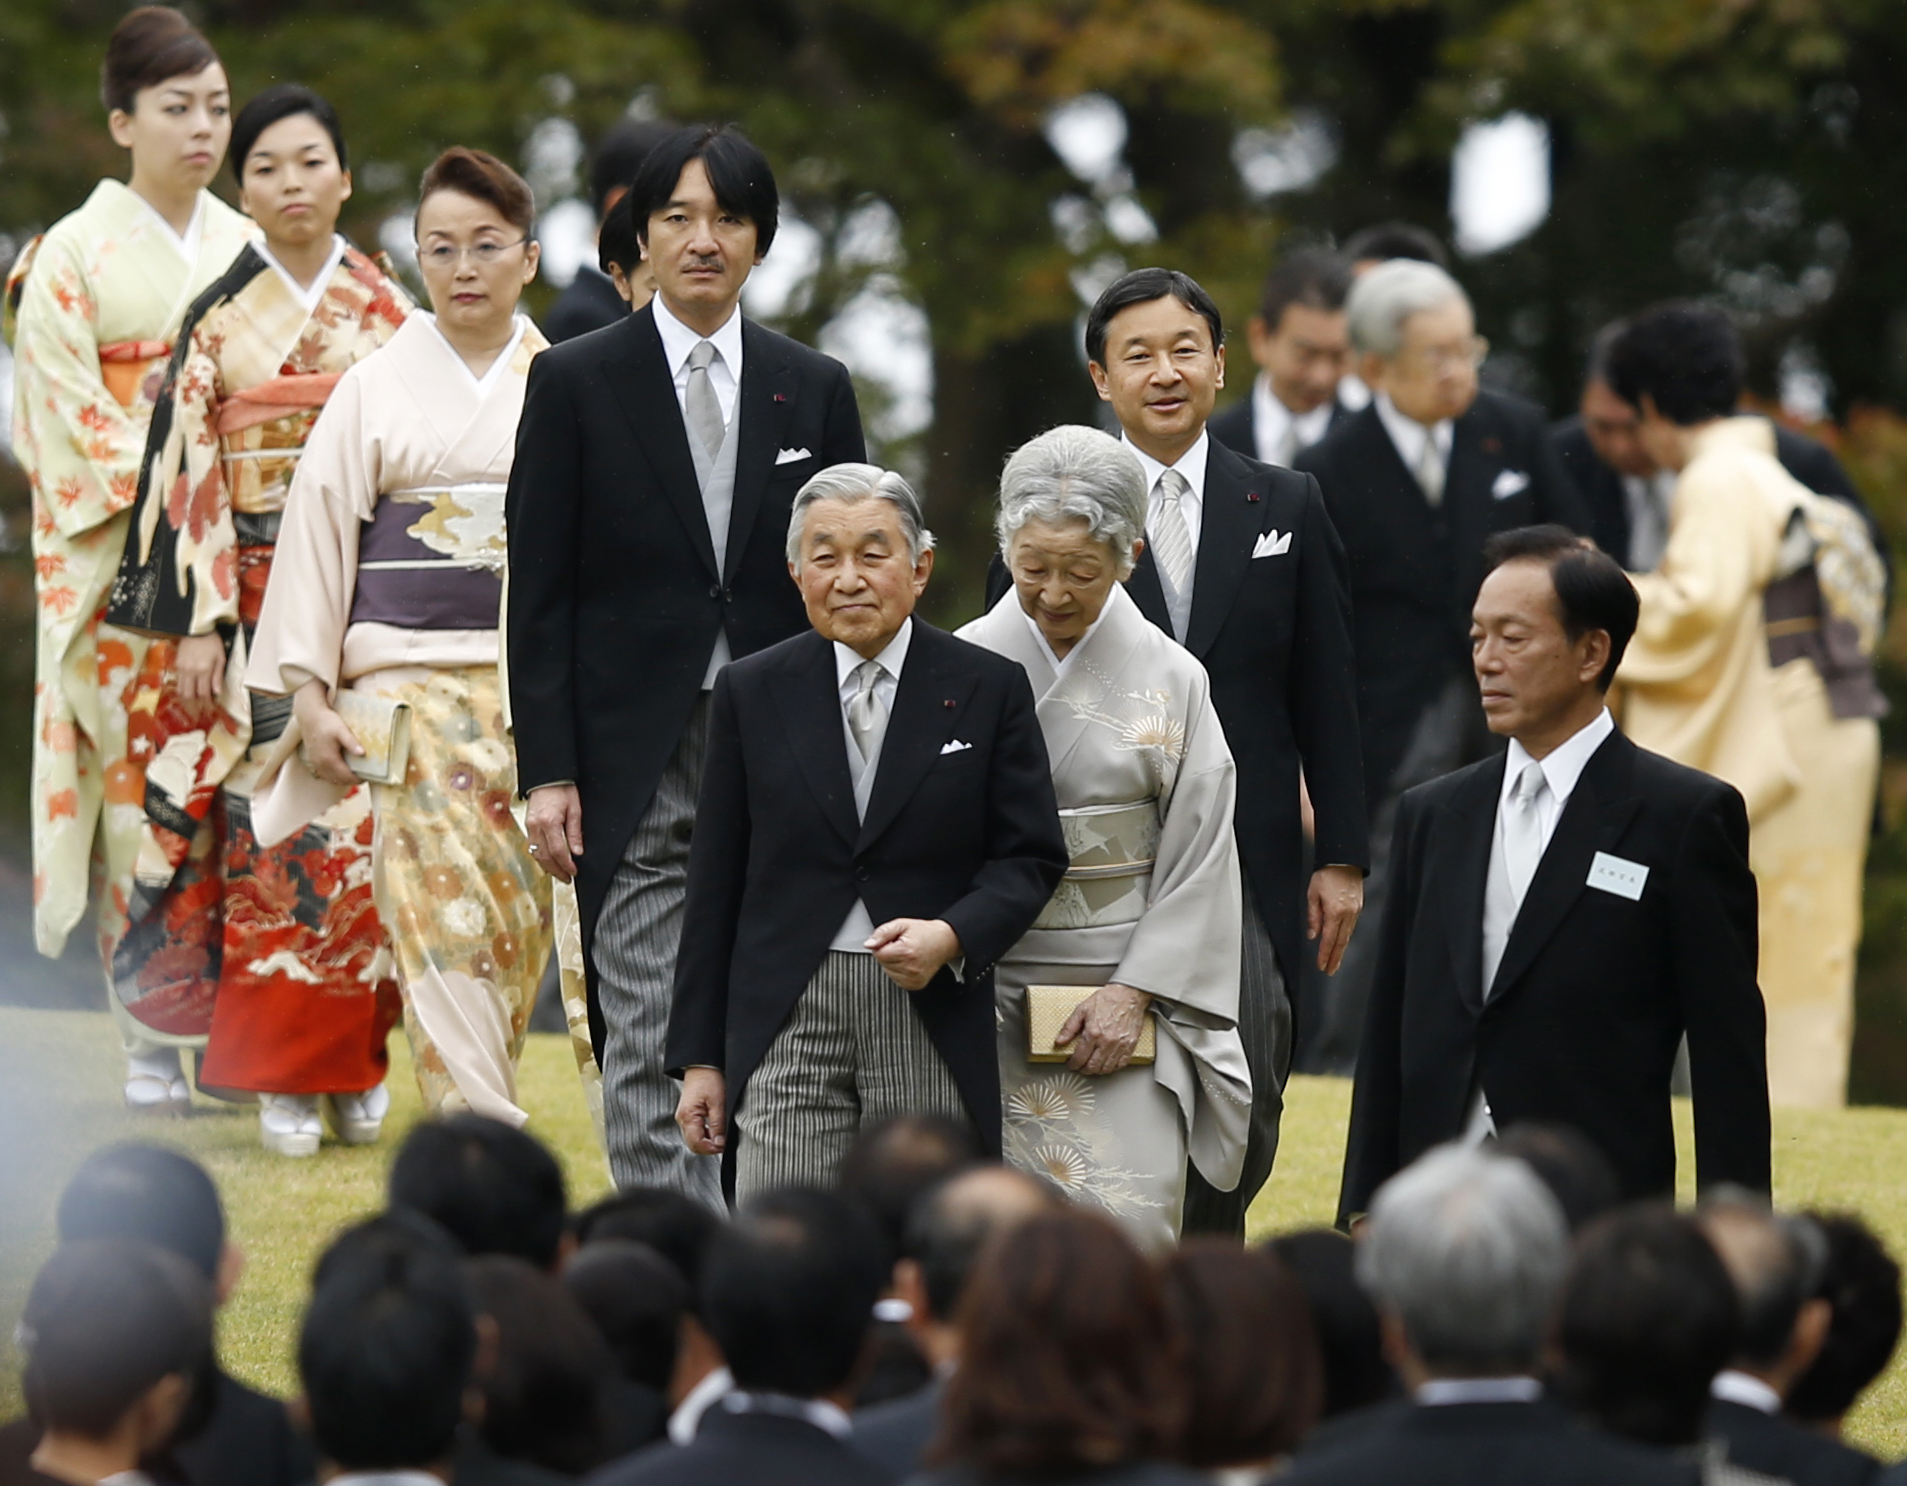 Emperor Akihito is accompanied by Empress Michiko and Imperial family members (from left) Princess Yoko, Princess Akiko, Princess Nobuko, Prince Akishino and Crown Prince Naruhito, as they arrive at the autumn garden party in Tokyo in November 2014. | AP